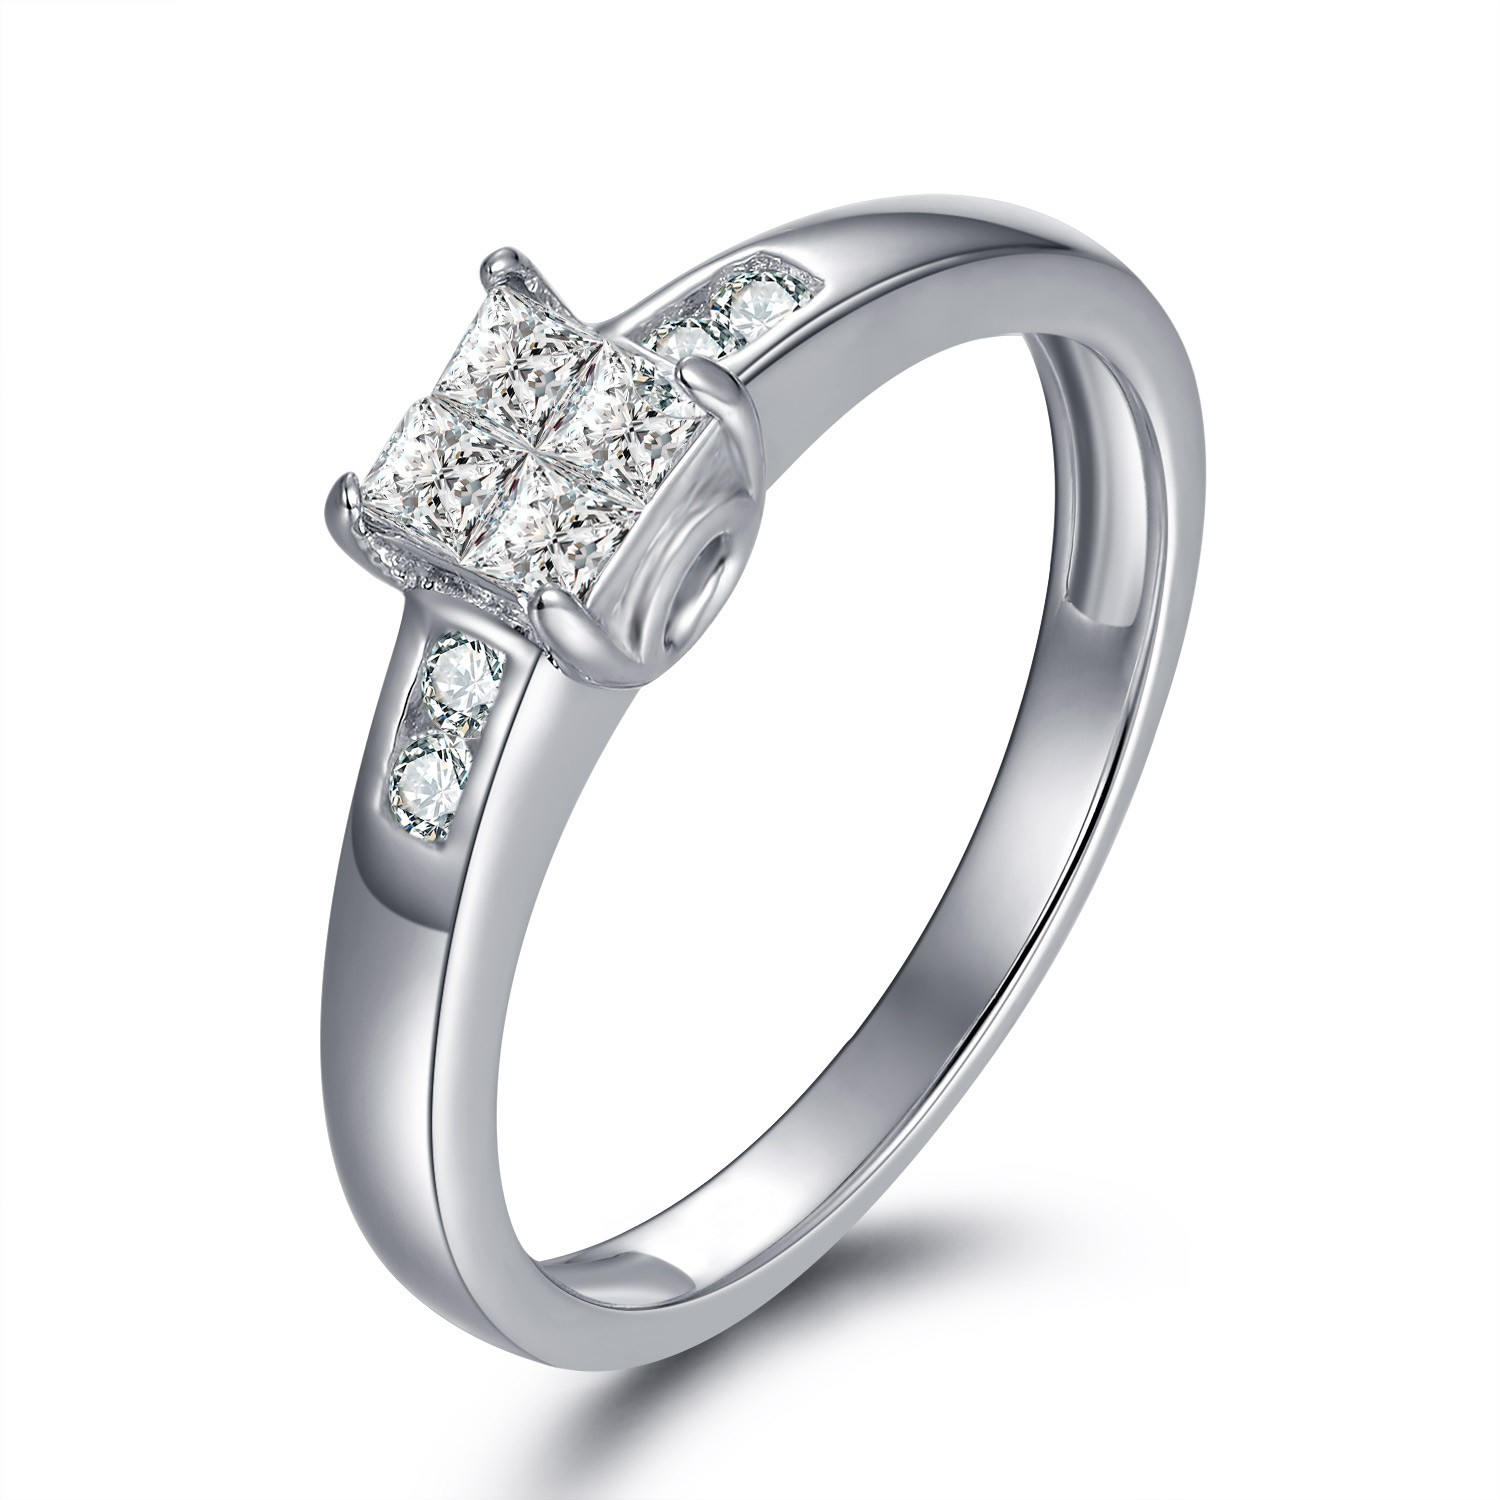 1/8CT Princess Cut Gemstone Sterling Silver Engagement Ring